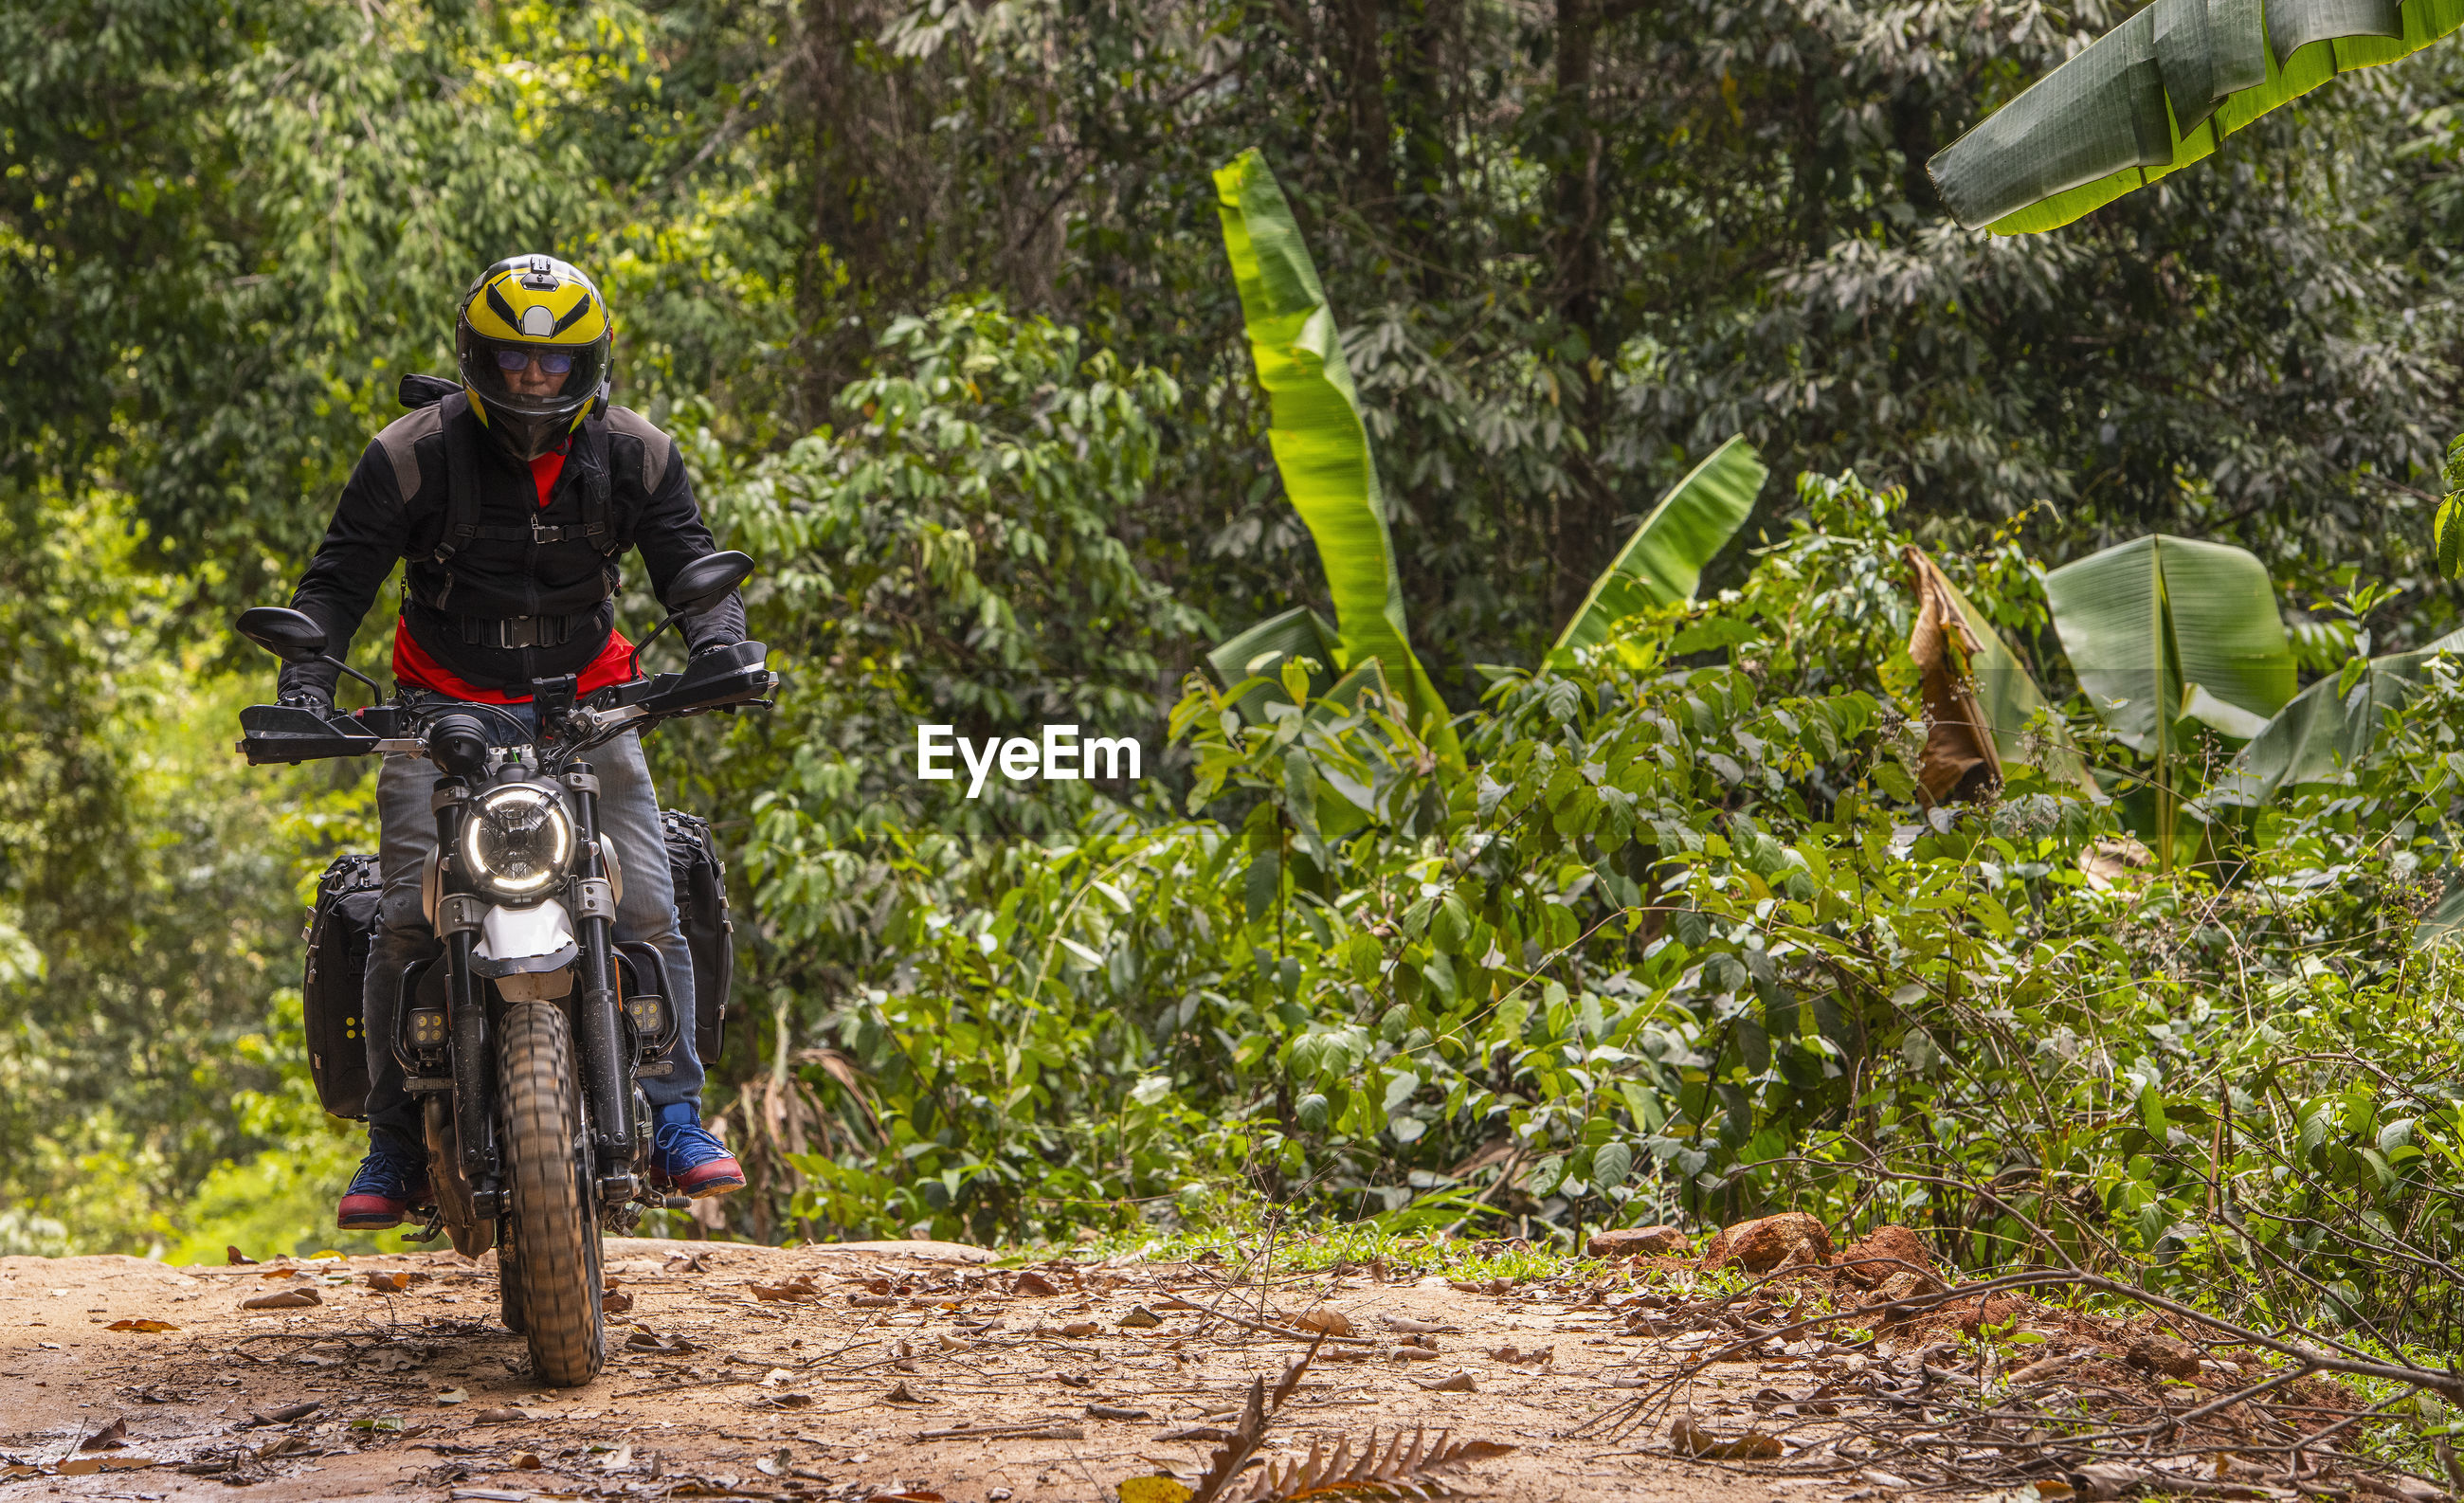 MAN RIDING MOTORCYCLE ON ROAD AMIDST TREES